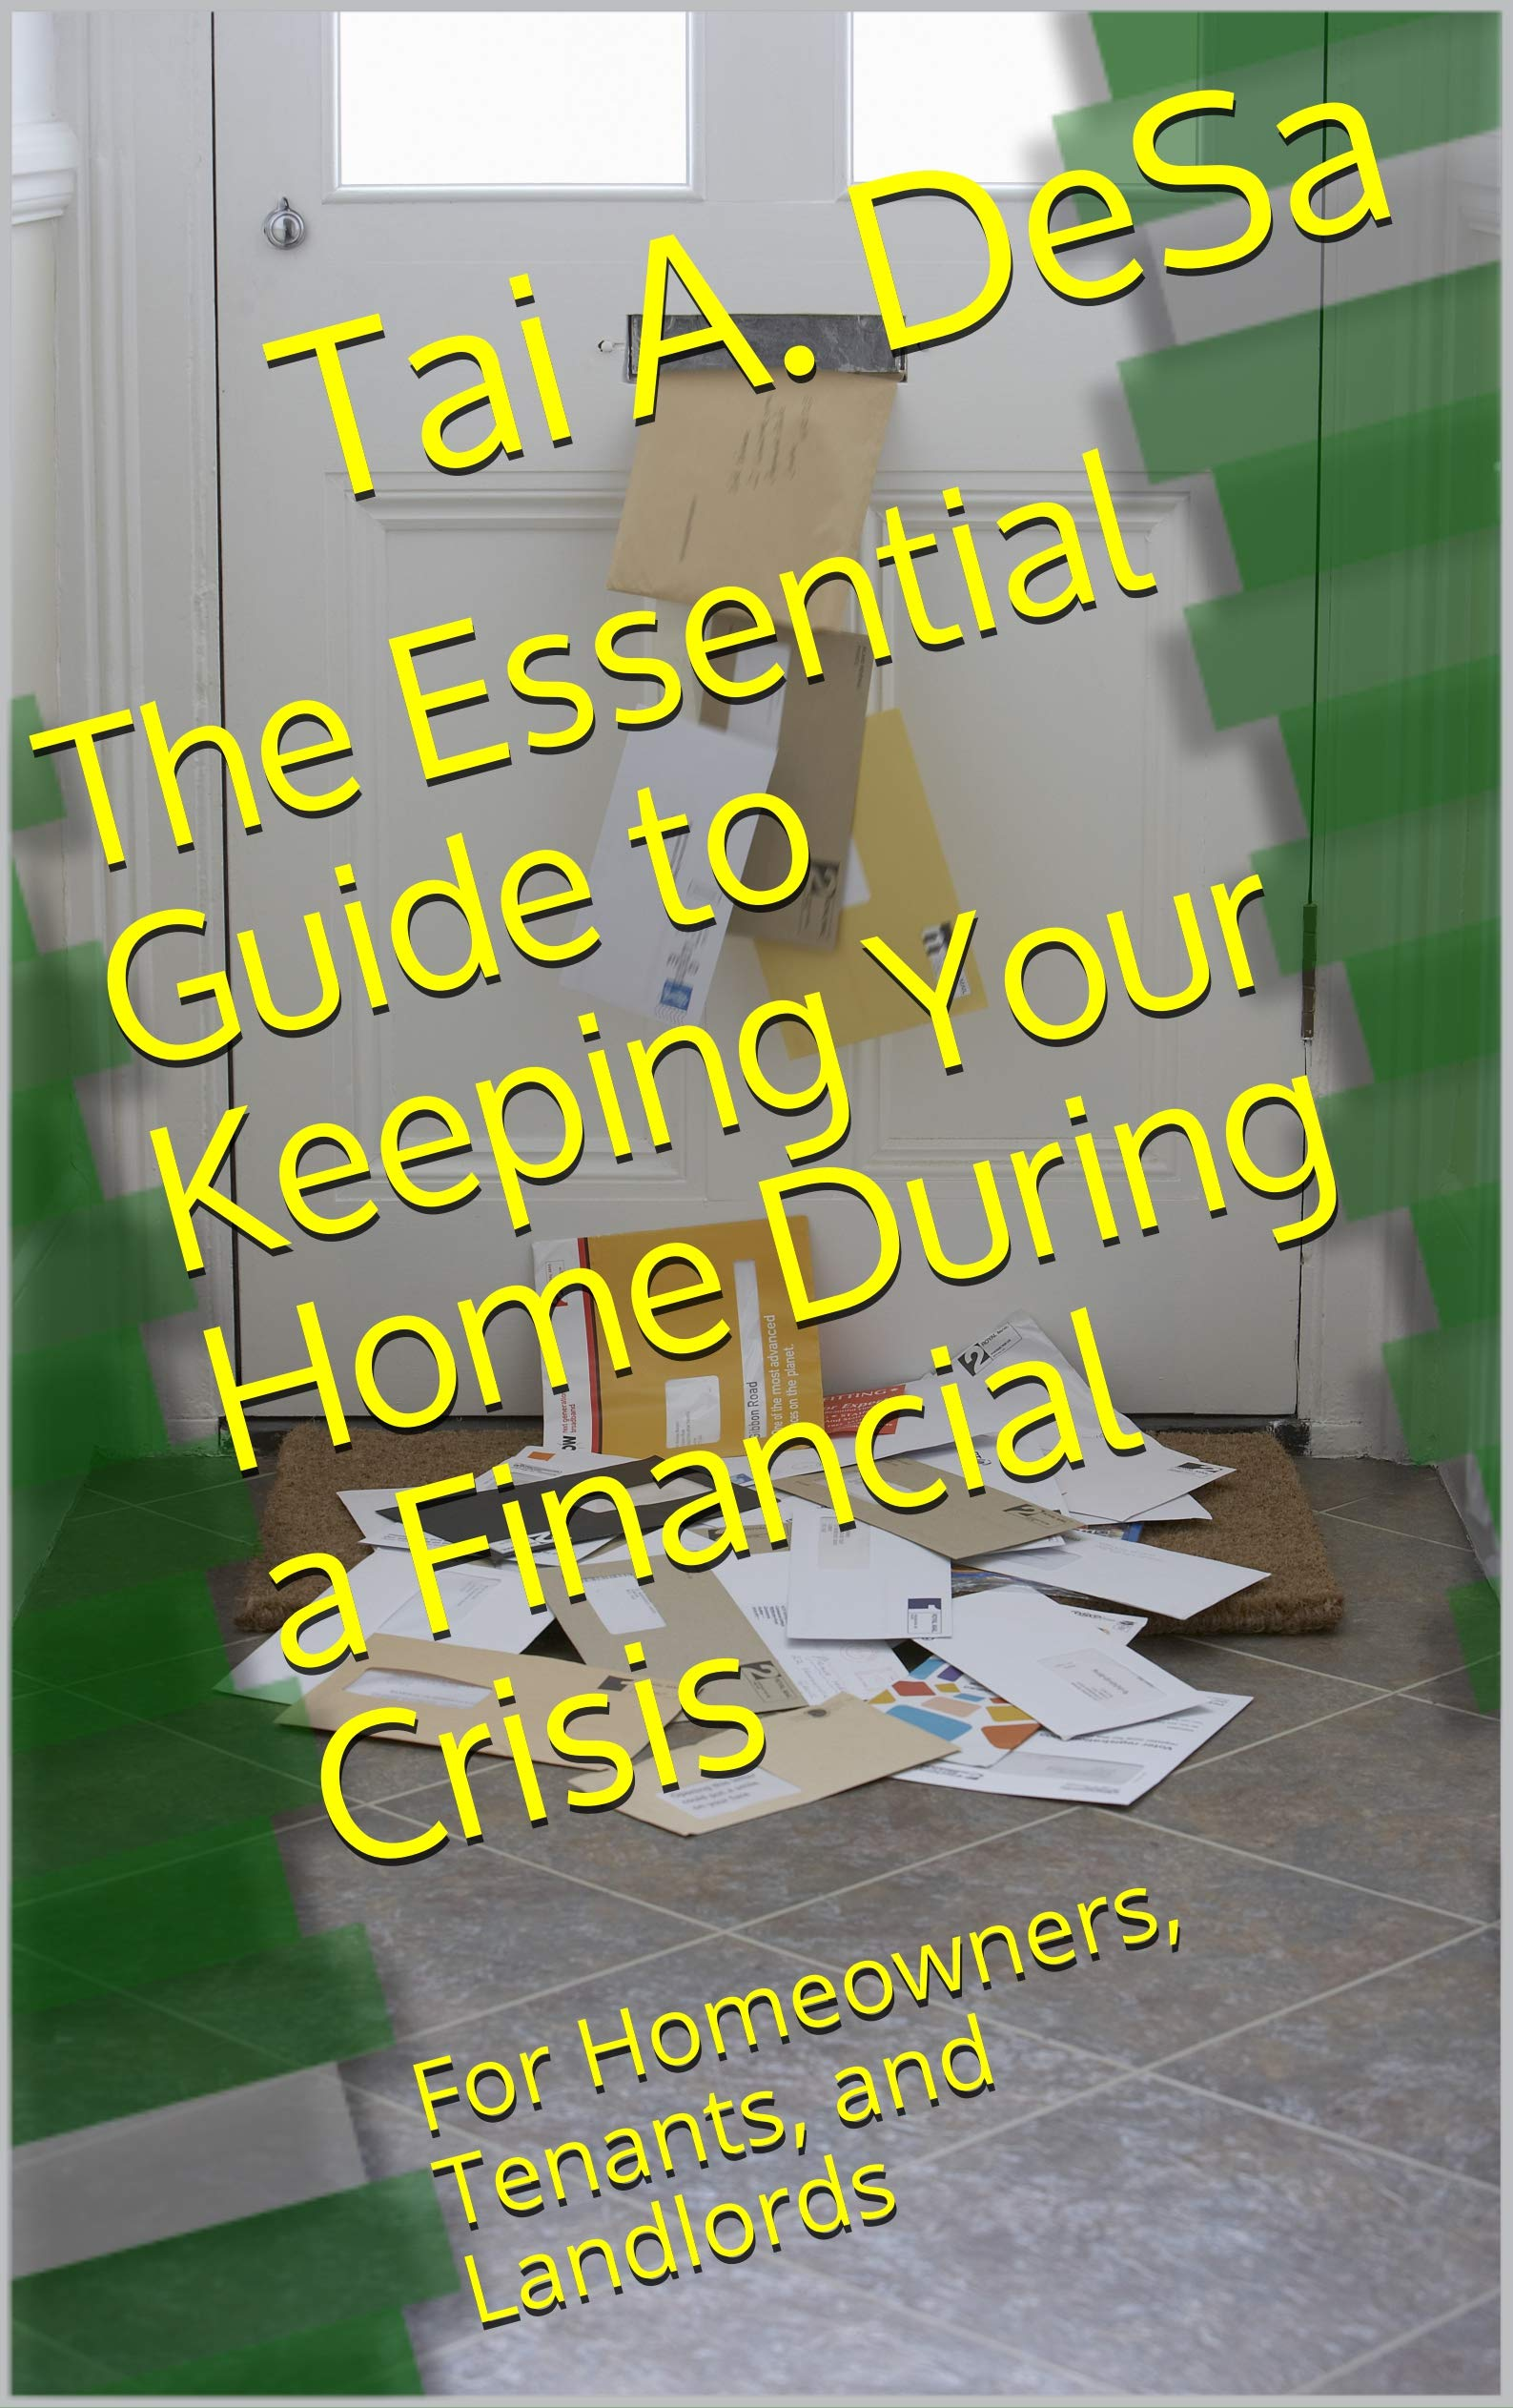 The Essential Guide to Keeping Your Home During a Financial Crisis: For Homeowners, Tenants, and Landlords